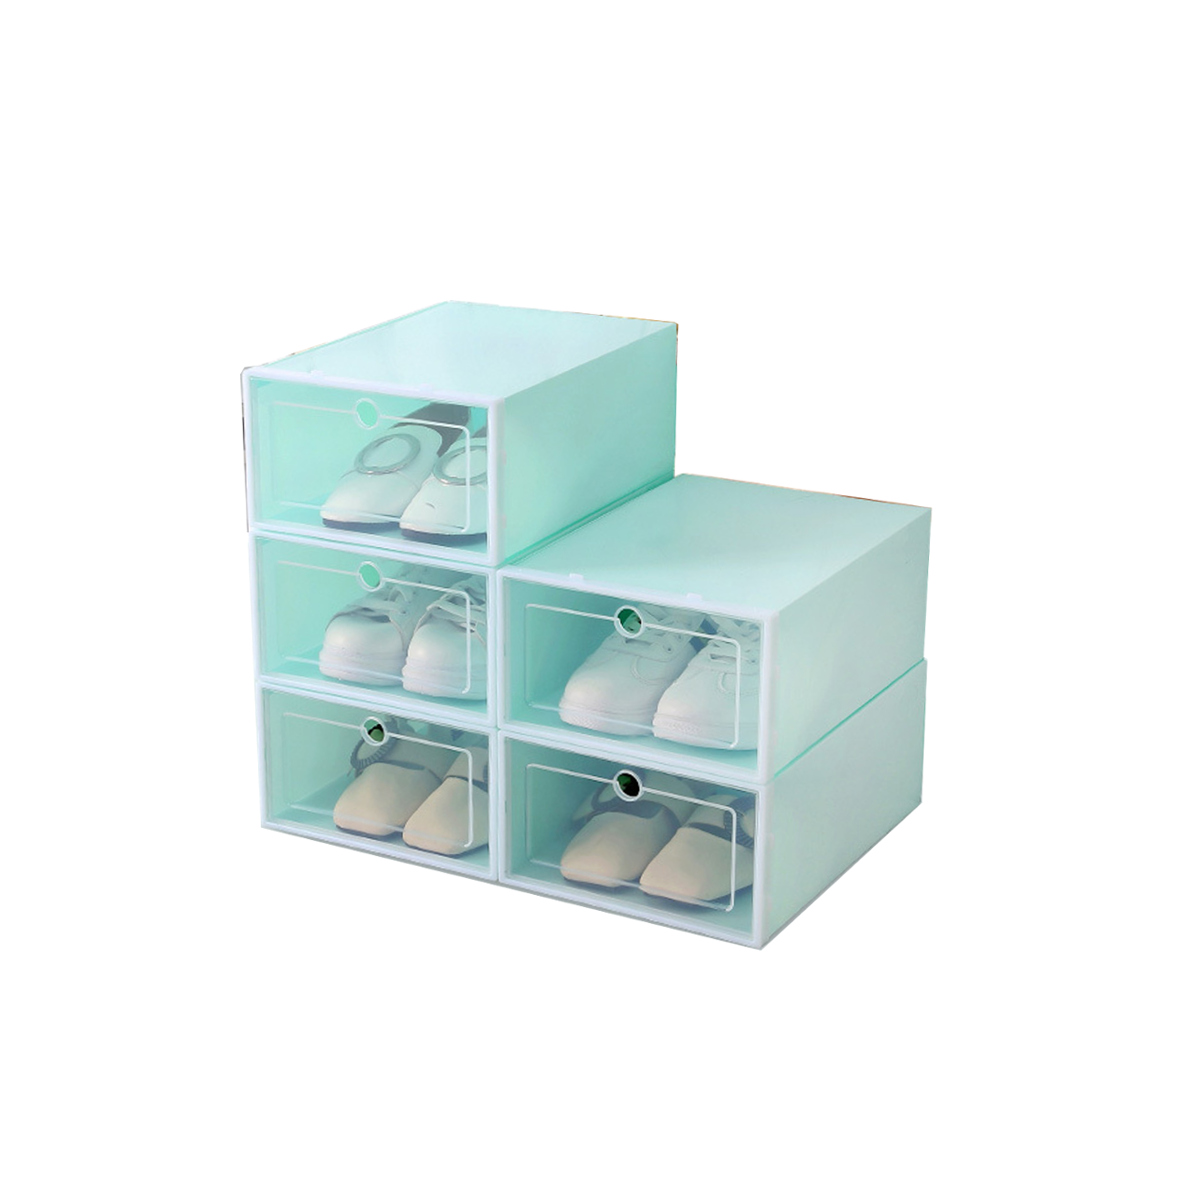 Clear Display Boxes Foldable Clear Plastic Shoe Storage Boxes Display